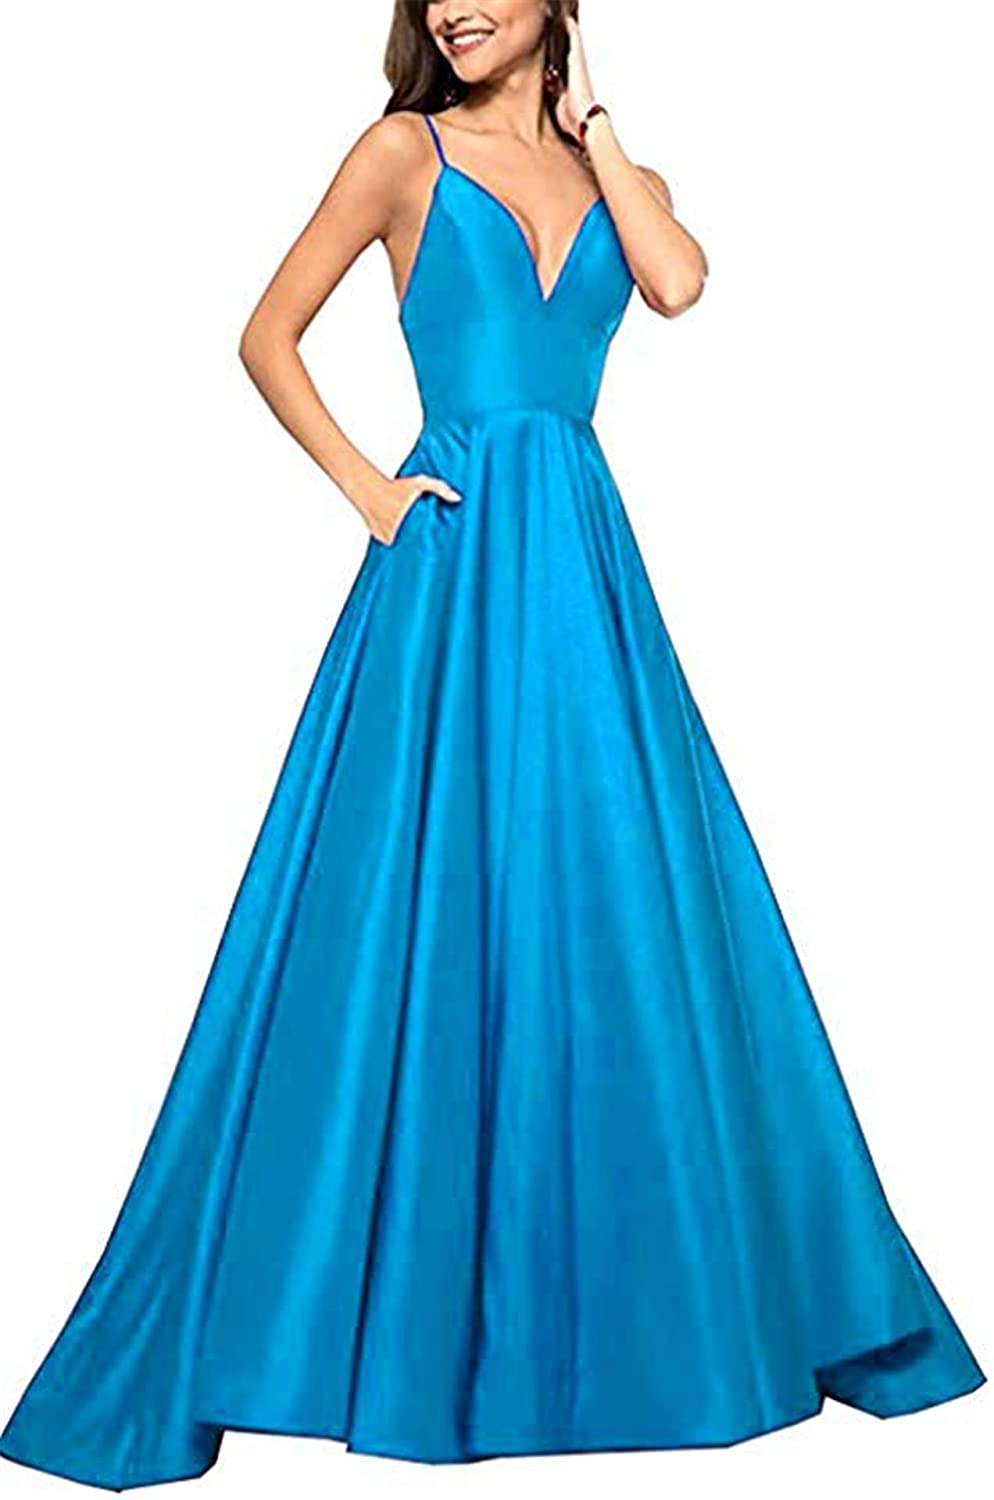 bluee QiJunGe V Neck Evening Party Gown A Line Spaghetti Strap Prom Dress with Pocket